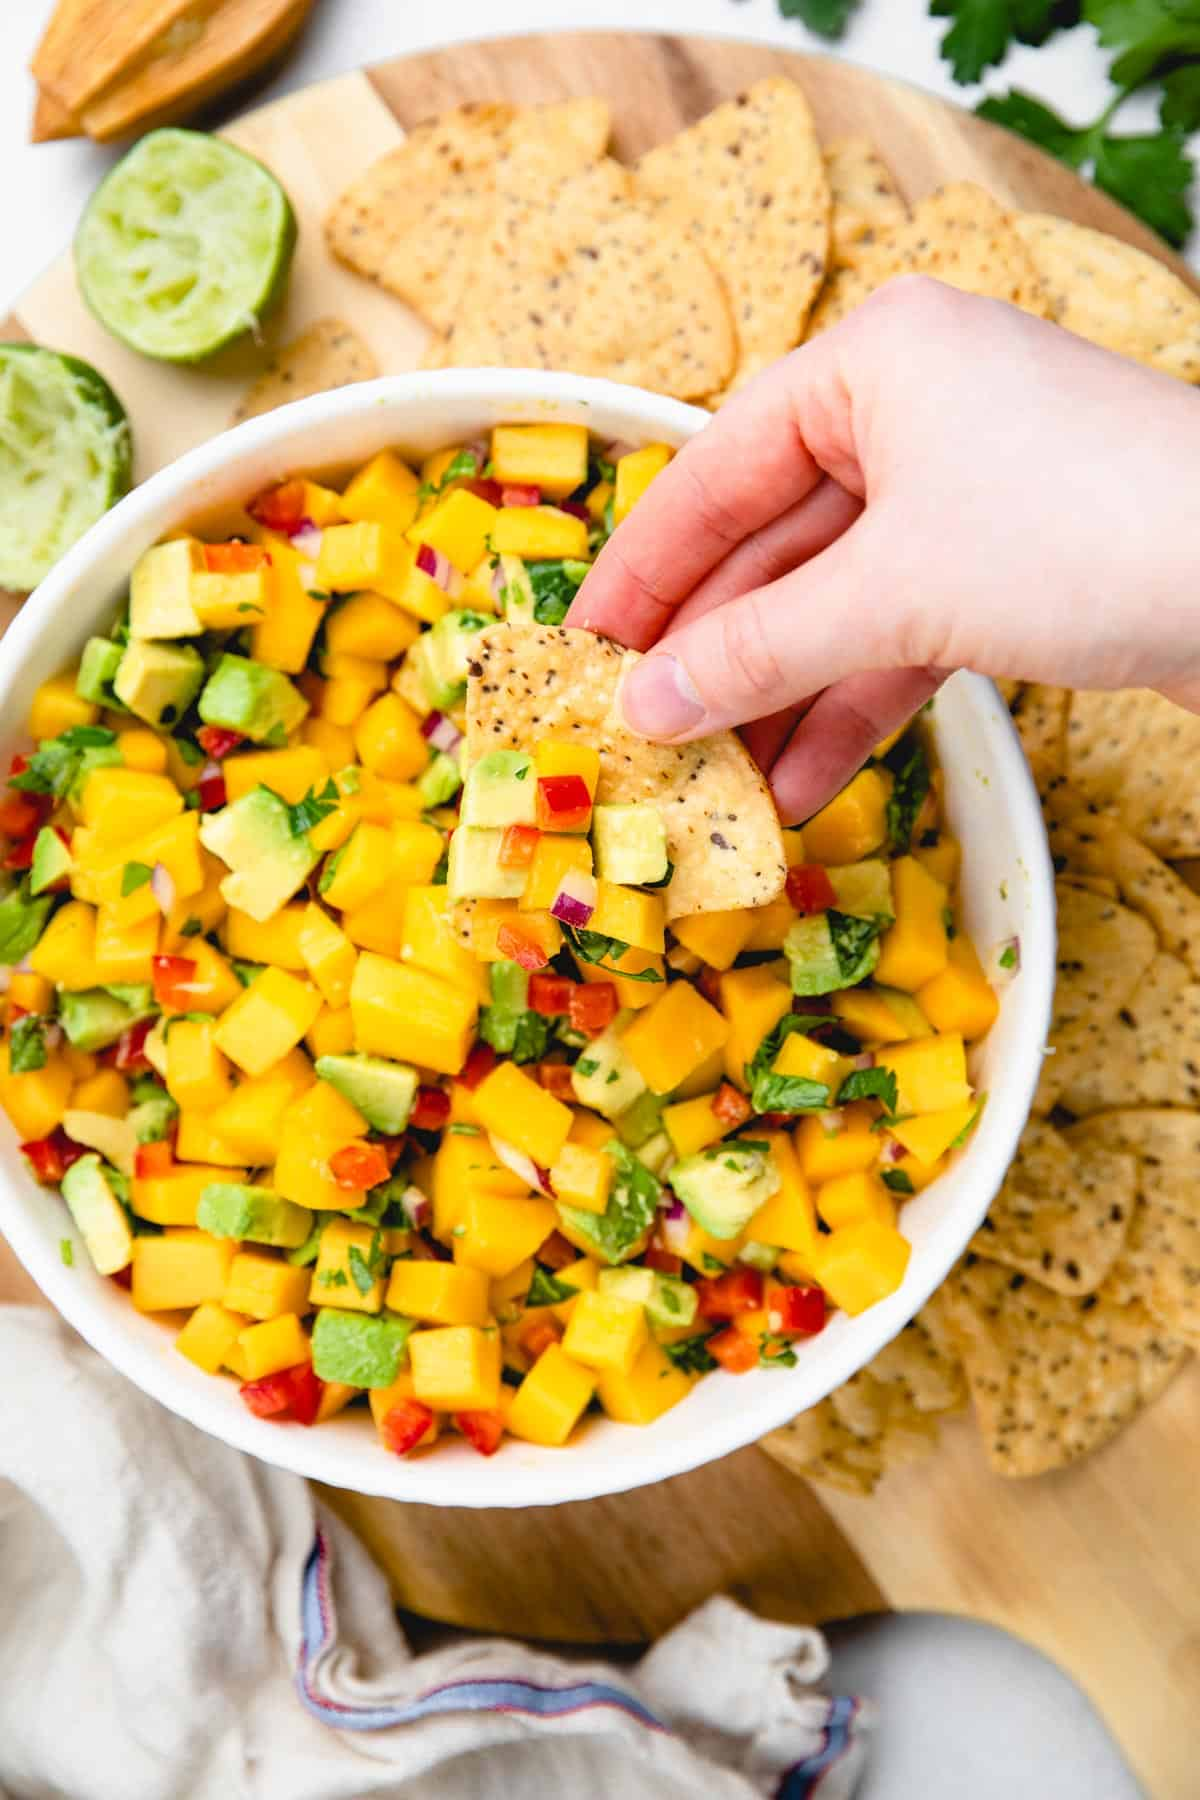 Mango Avocado Salsa with tortilla chips on a cutting board.